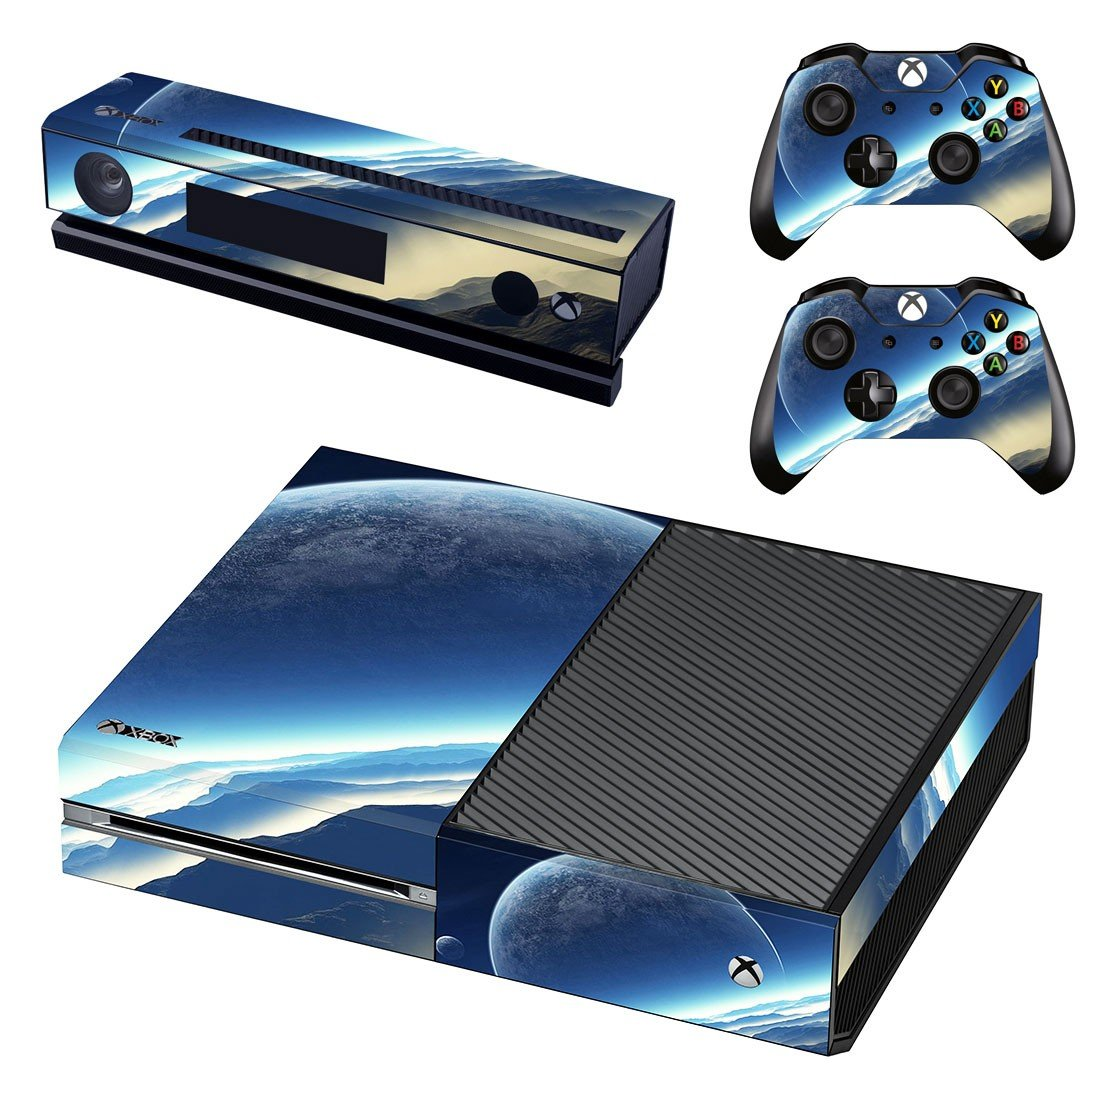 Sun sets scene skin decal for Xbox one console and controllers